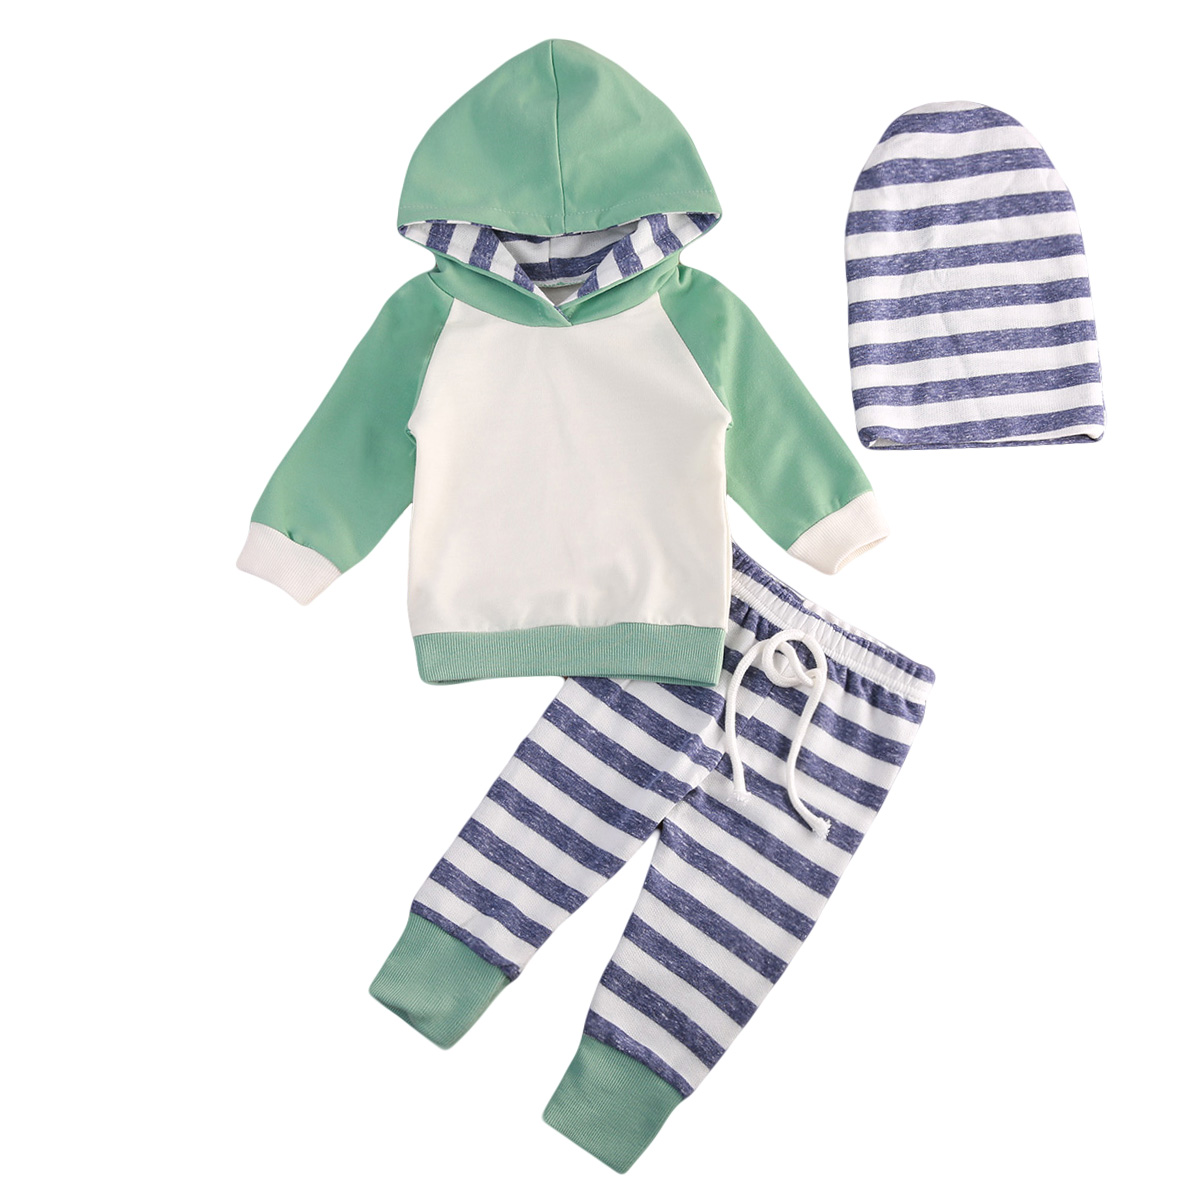 Autumn Cute Tracksuit Infant Toddler Baby Boy Girl Clothes